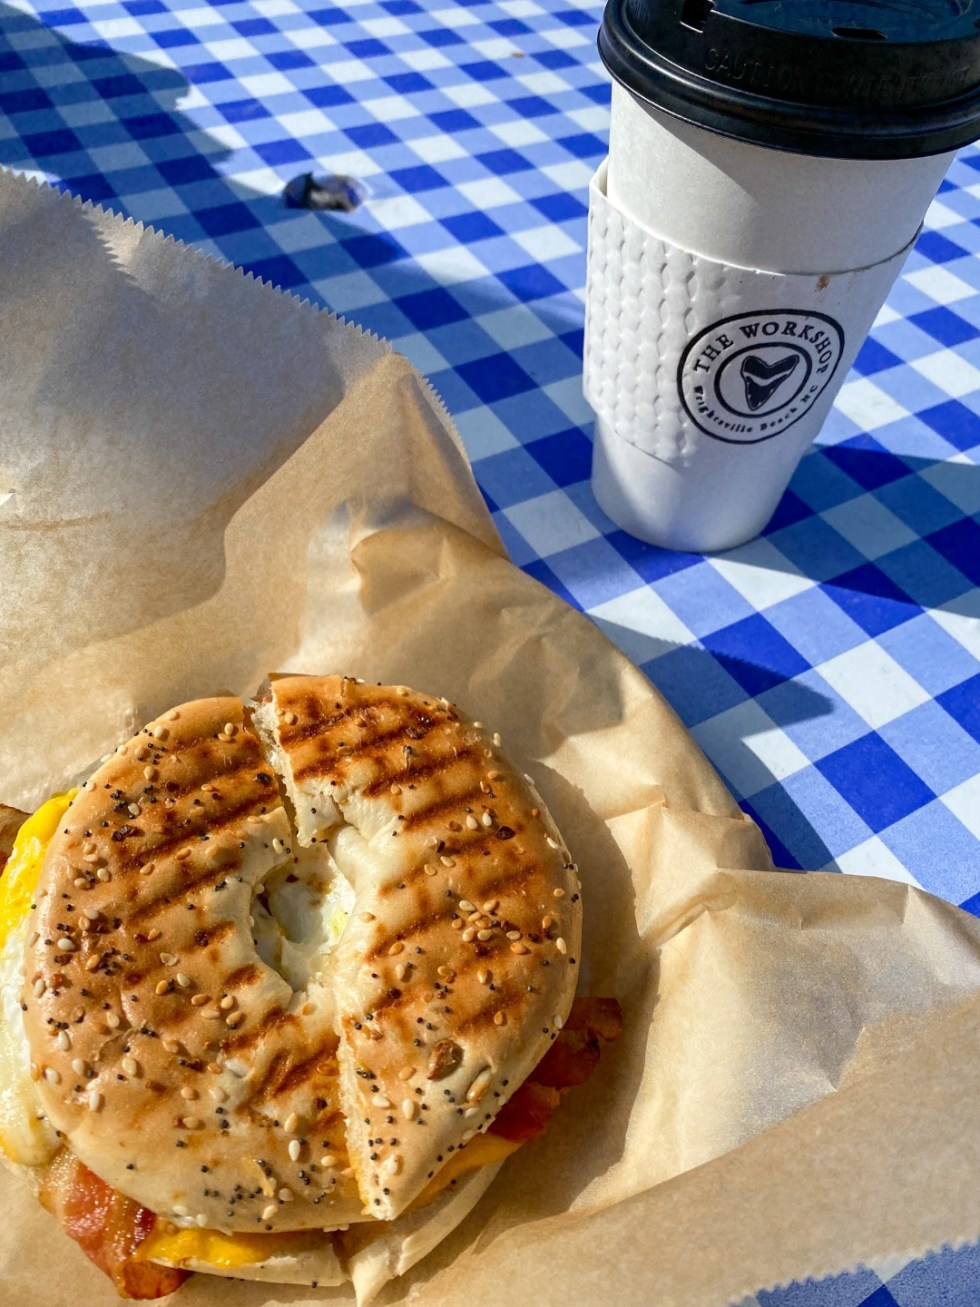 A Spring Weekend in Wilmington, NC: the Best Things to Do - I'm Fixin' To - @imfixintoblog |Weekend in Wilmington by popular NC travel blog, I'm Fixin' To: image of a bagel sandwich next to a The Workshop coffee cup.